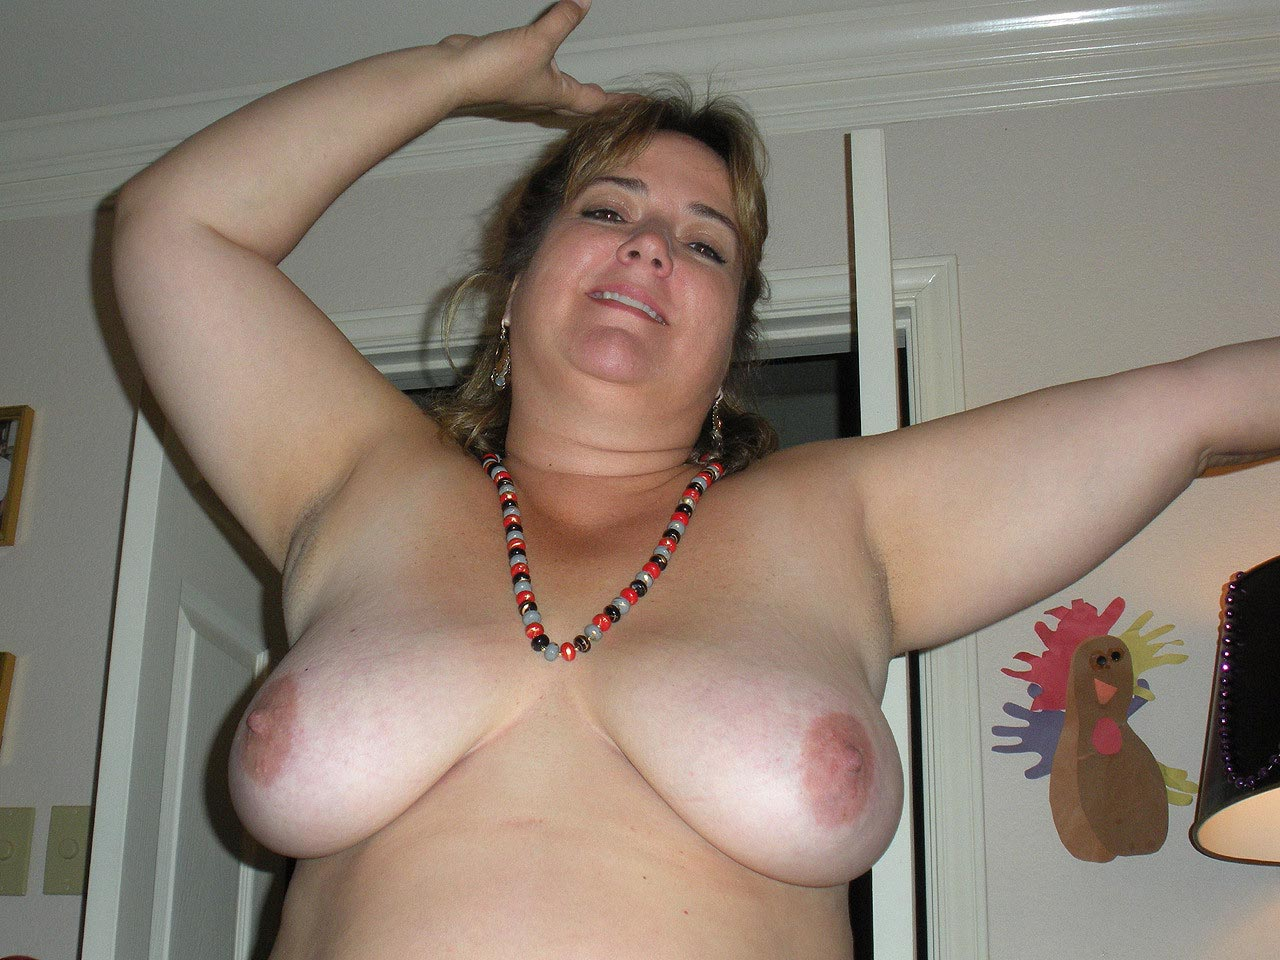 Agree, this My topless mom right